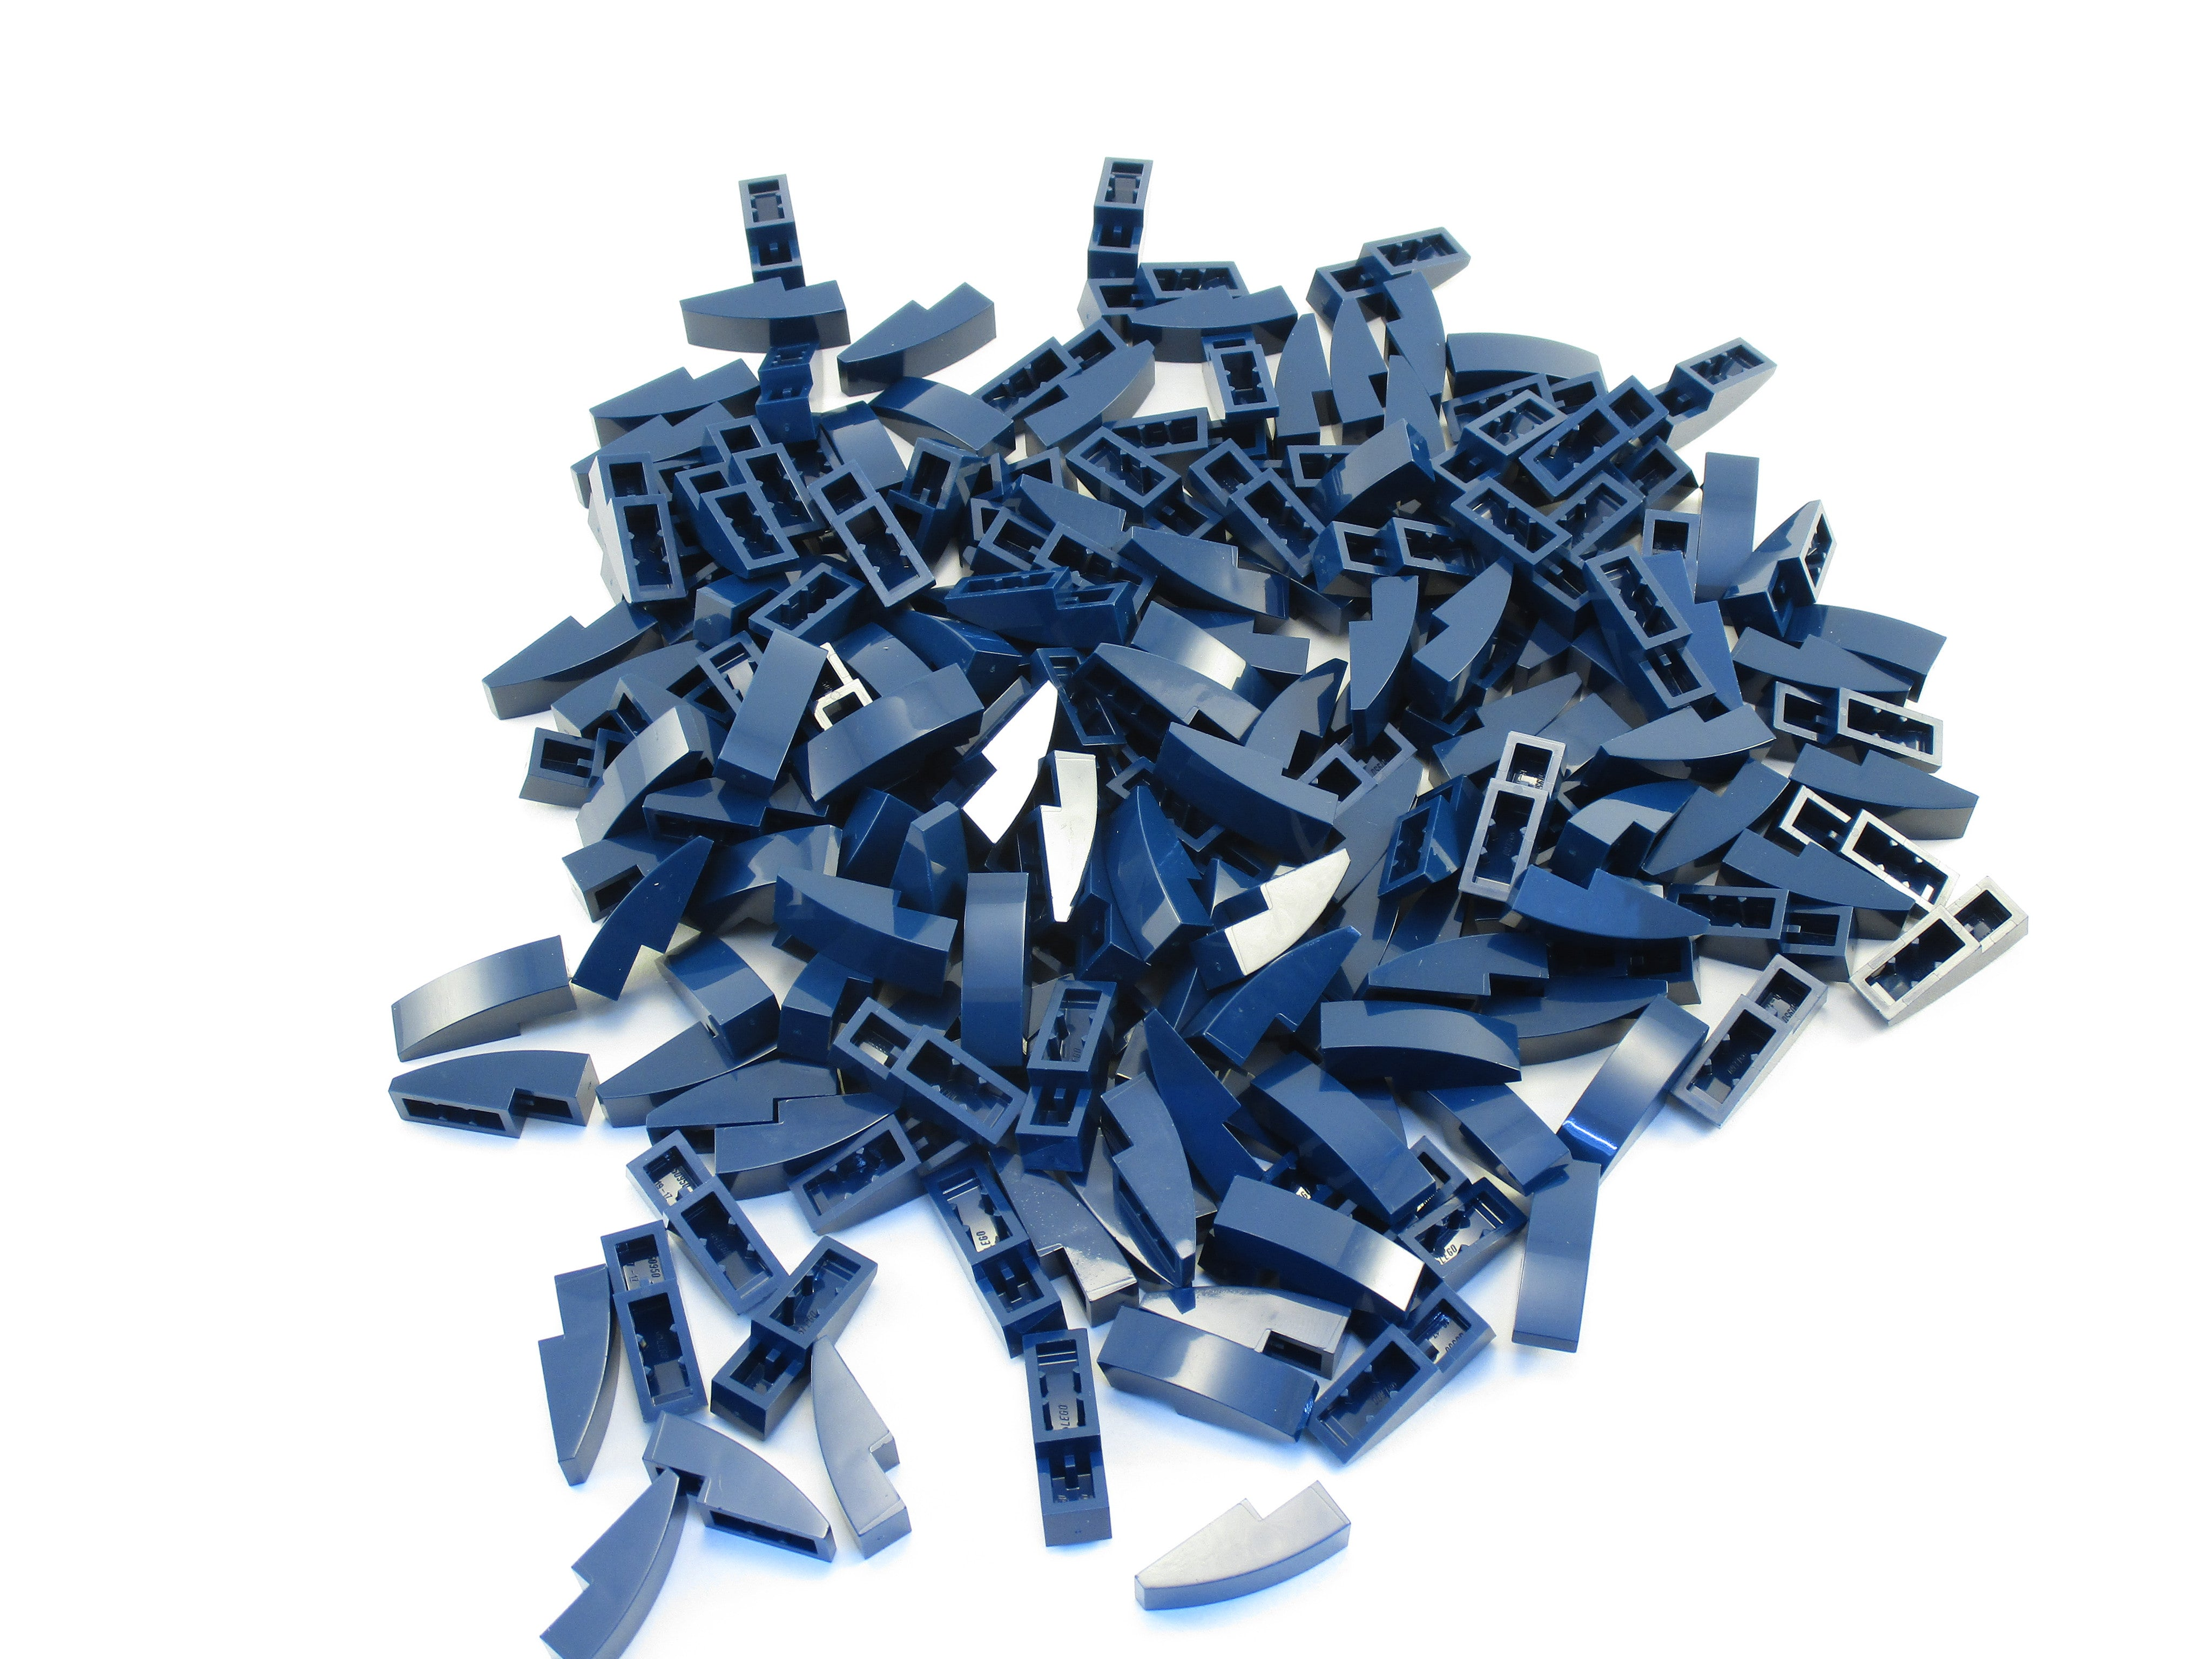 Lego Lot of 100 New Dark Blue Sloped Slopes Curved 3 x 1 No Studs  Parts